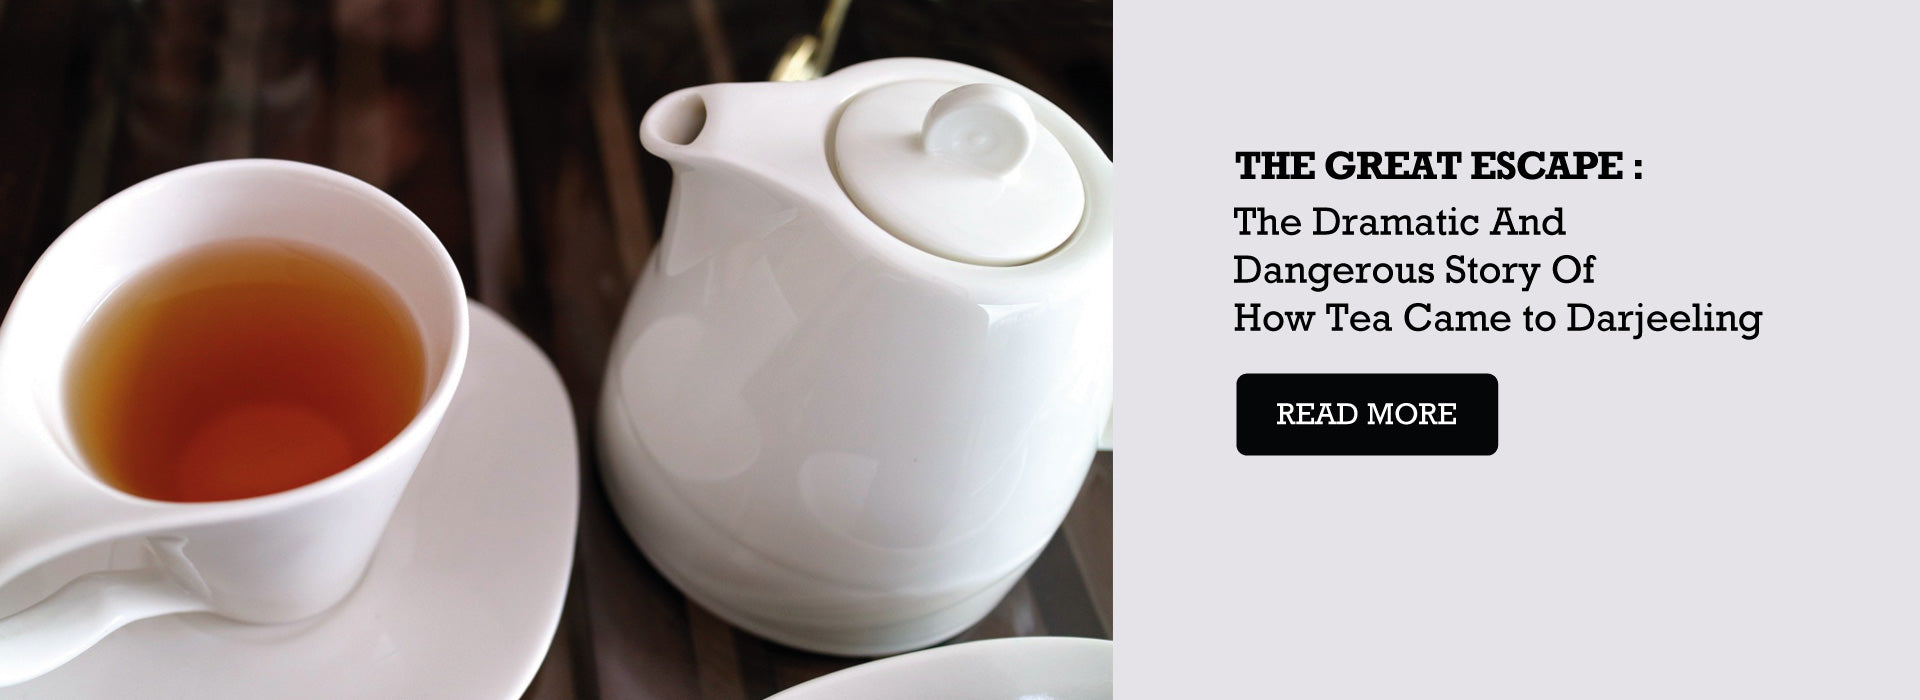 The Great Escape : The Dramatic And Dangerous Story Of How Tea Came to Darjeeling